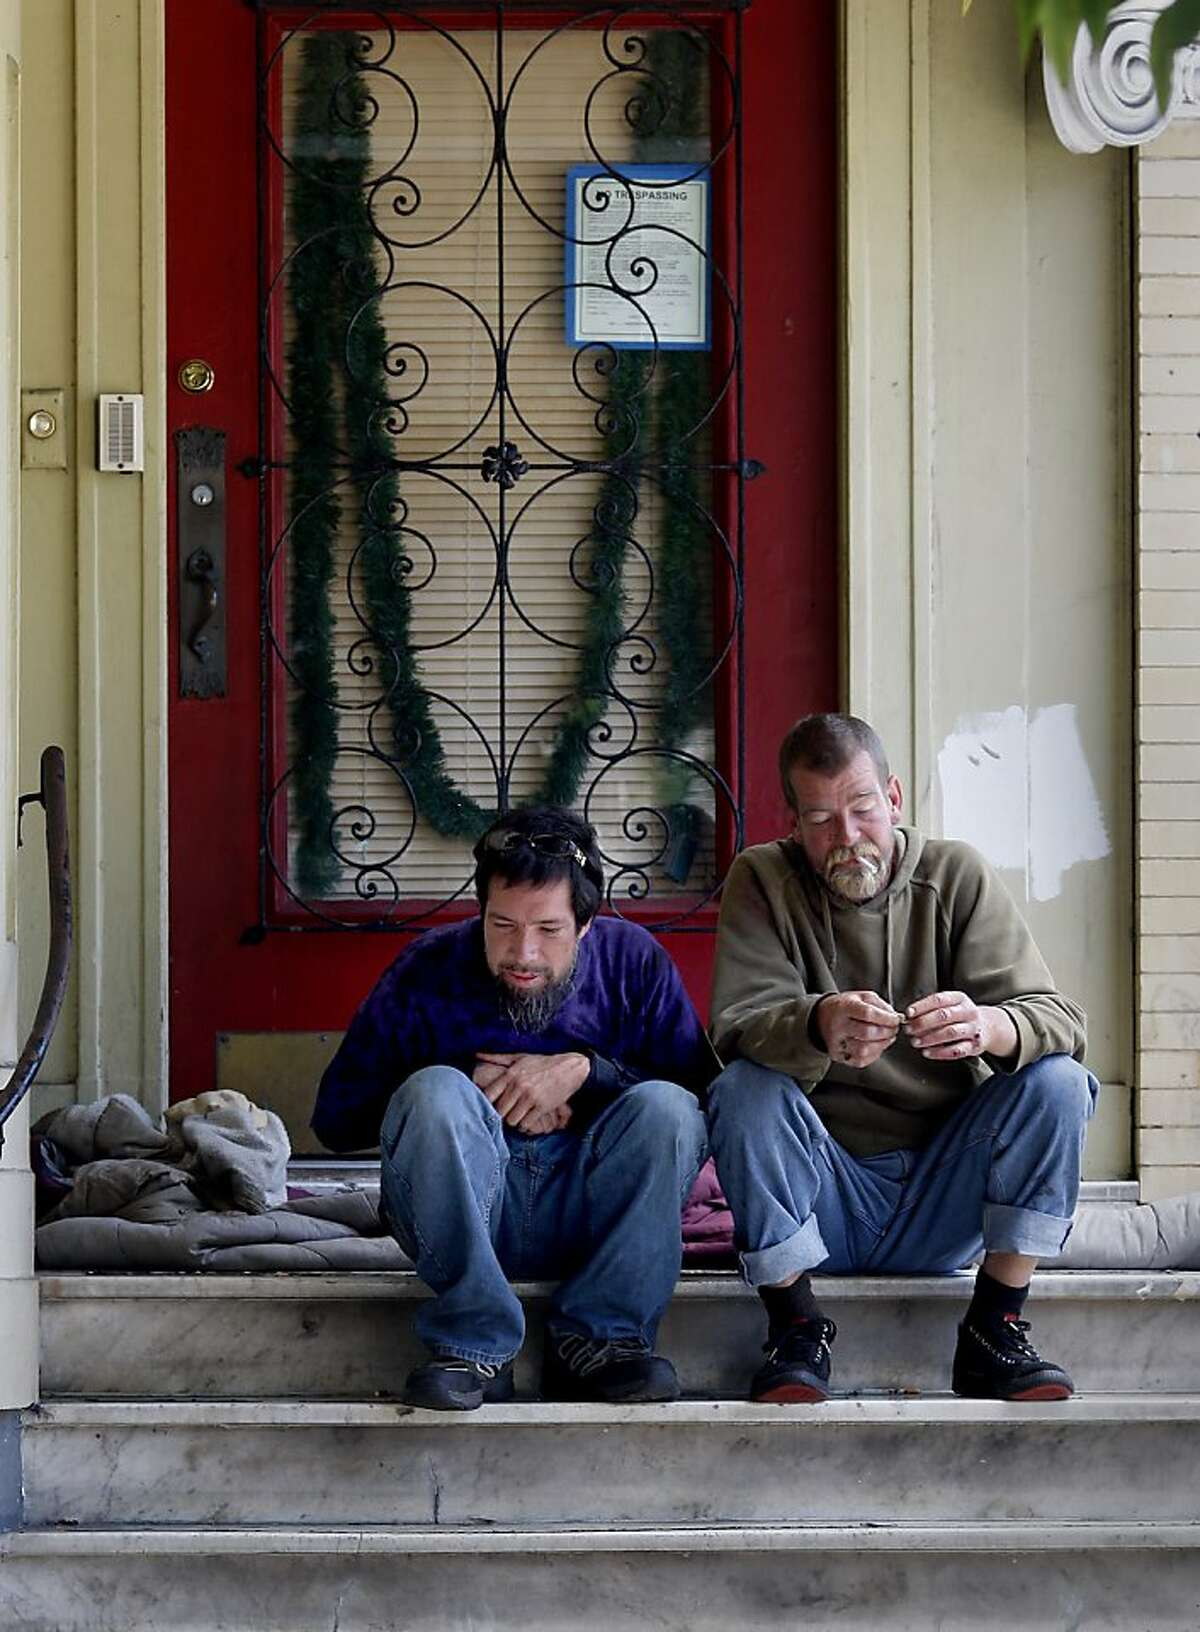 Dequina (left) and Justin O'Brien, who has 34 sit/lie citations, rest on the steps of a Catholic church building.